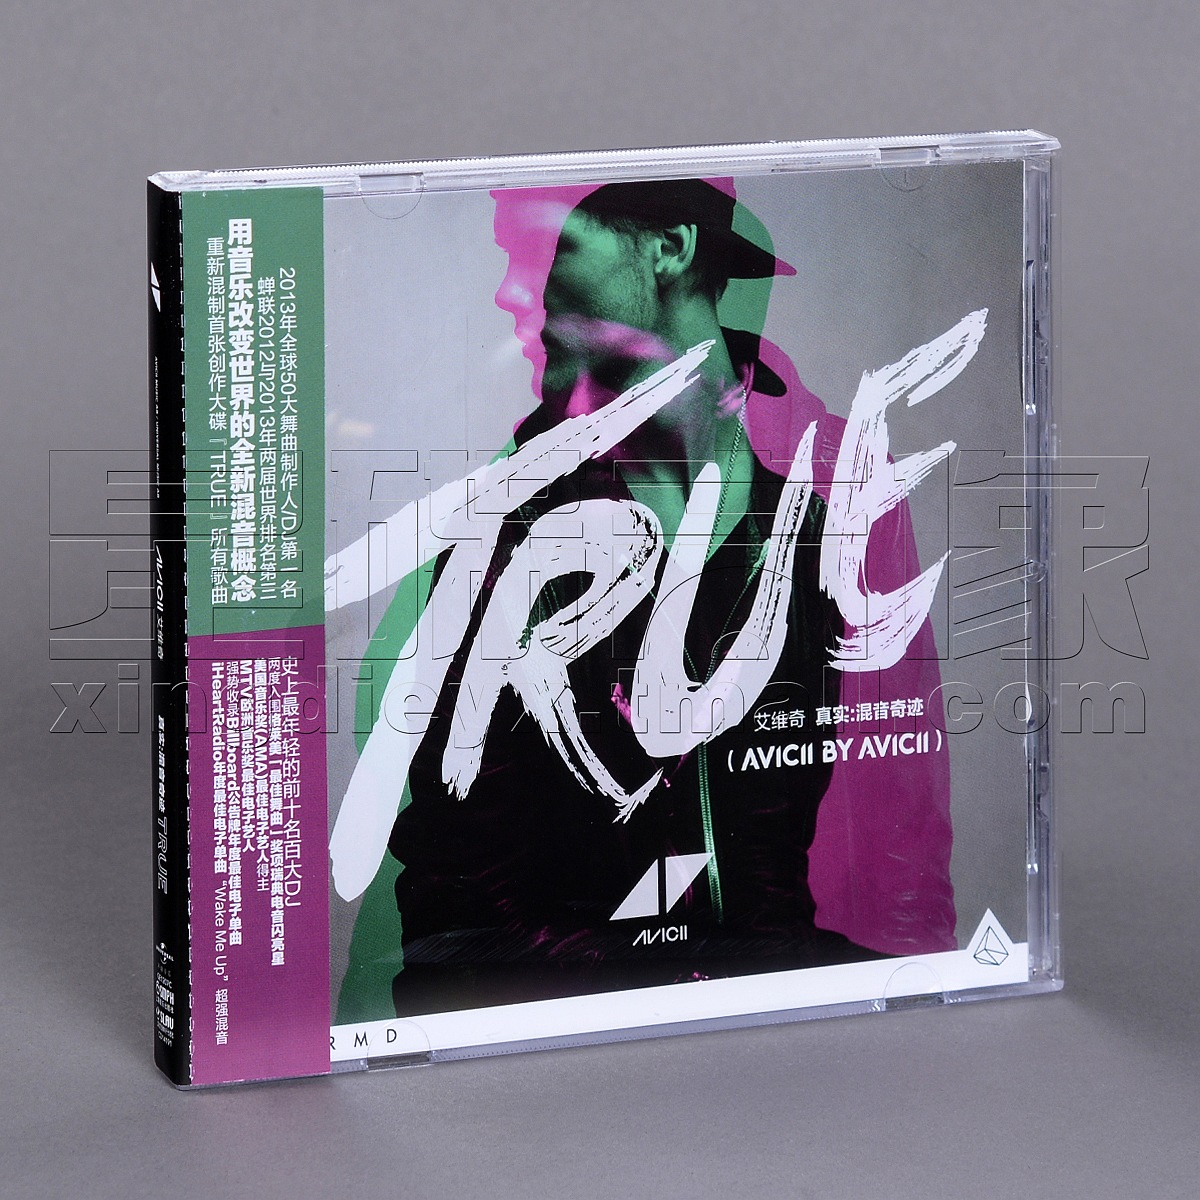 Музыка CD, DVD   DJ Avicii True CD сумка для cd и dvd плеера bubm djm2000 dj dj midi dj